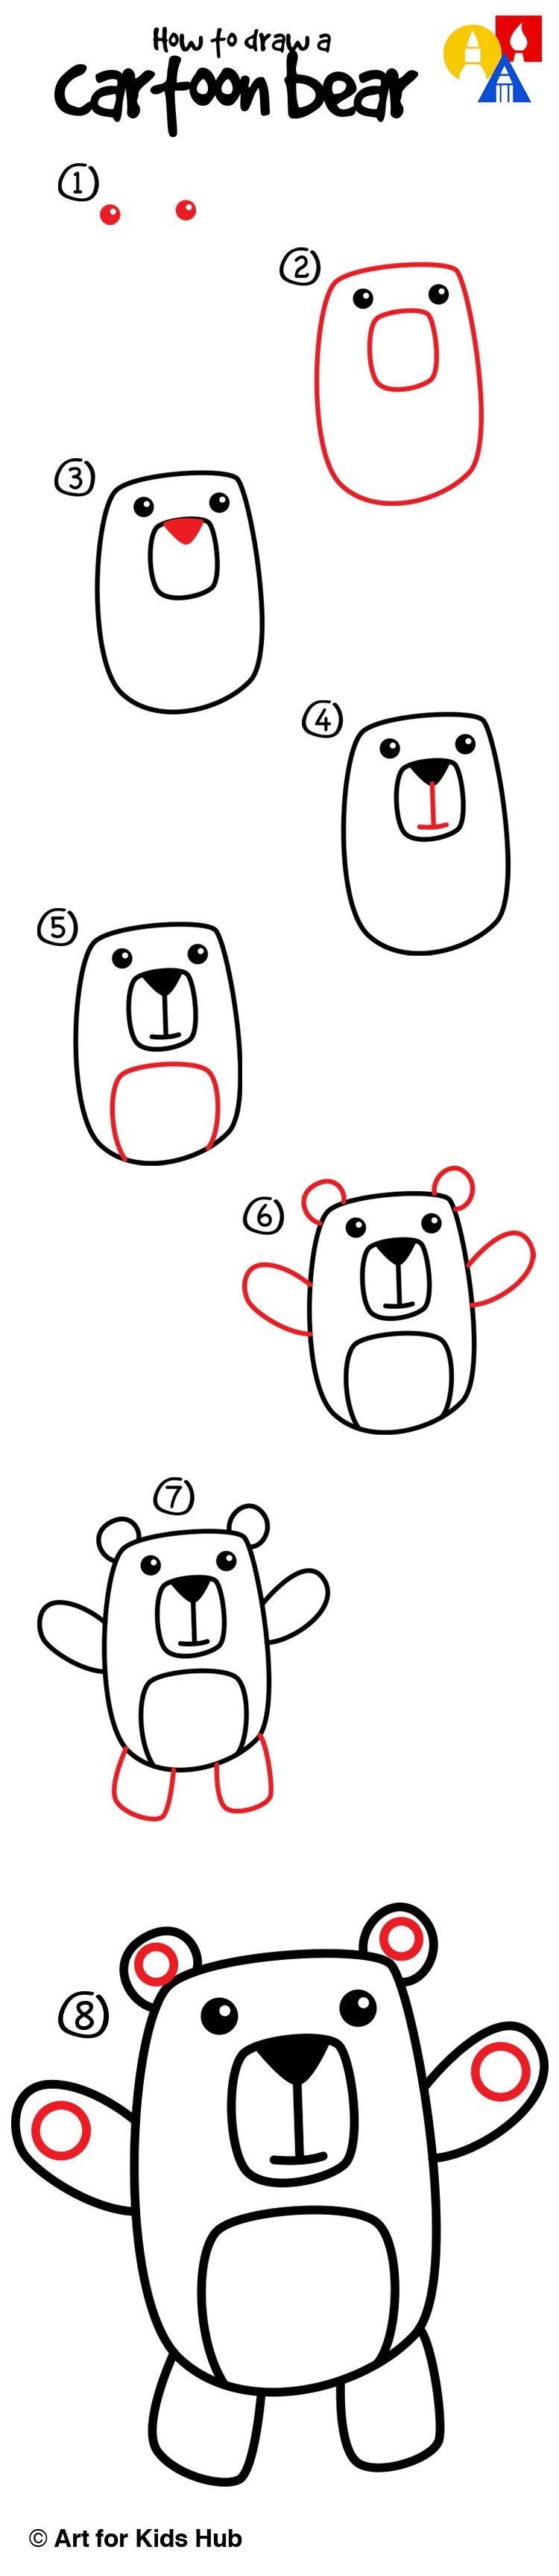 How to draw a cartoon bear for young artists art for kids hub easy step by step to teach kids how to draw a cute cartoon bear thecheapjerseys Images